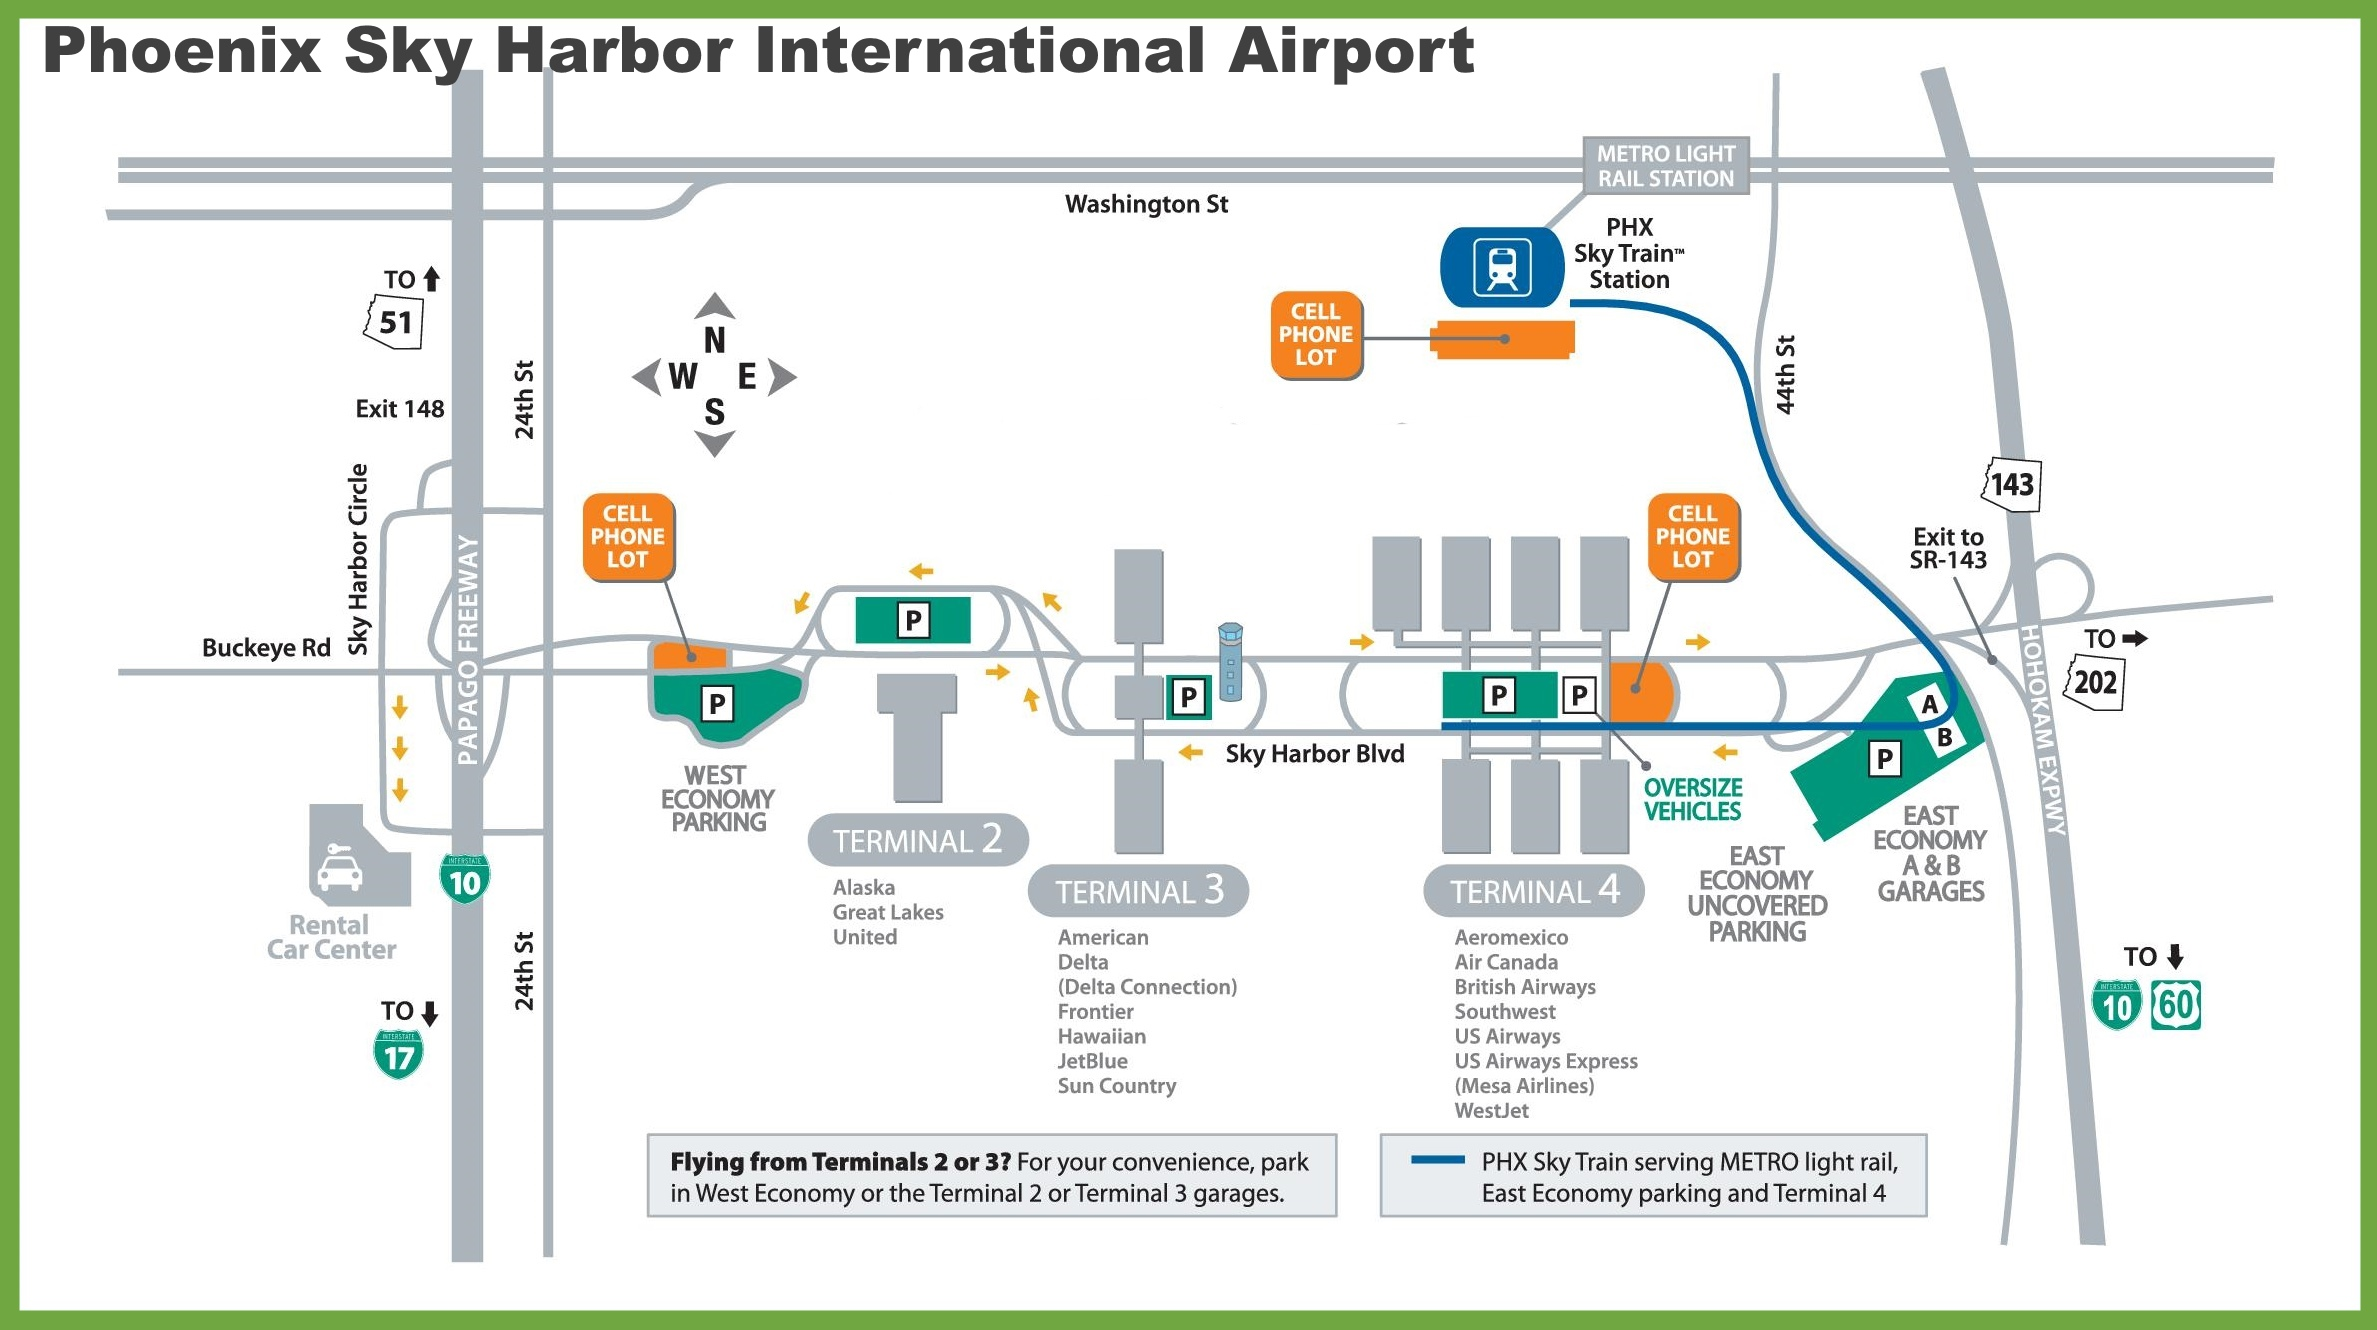 Phoenix Sky Harbor International Airport map